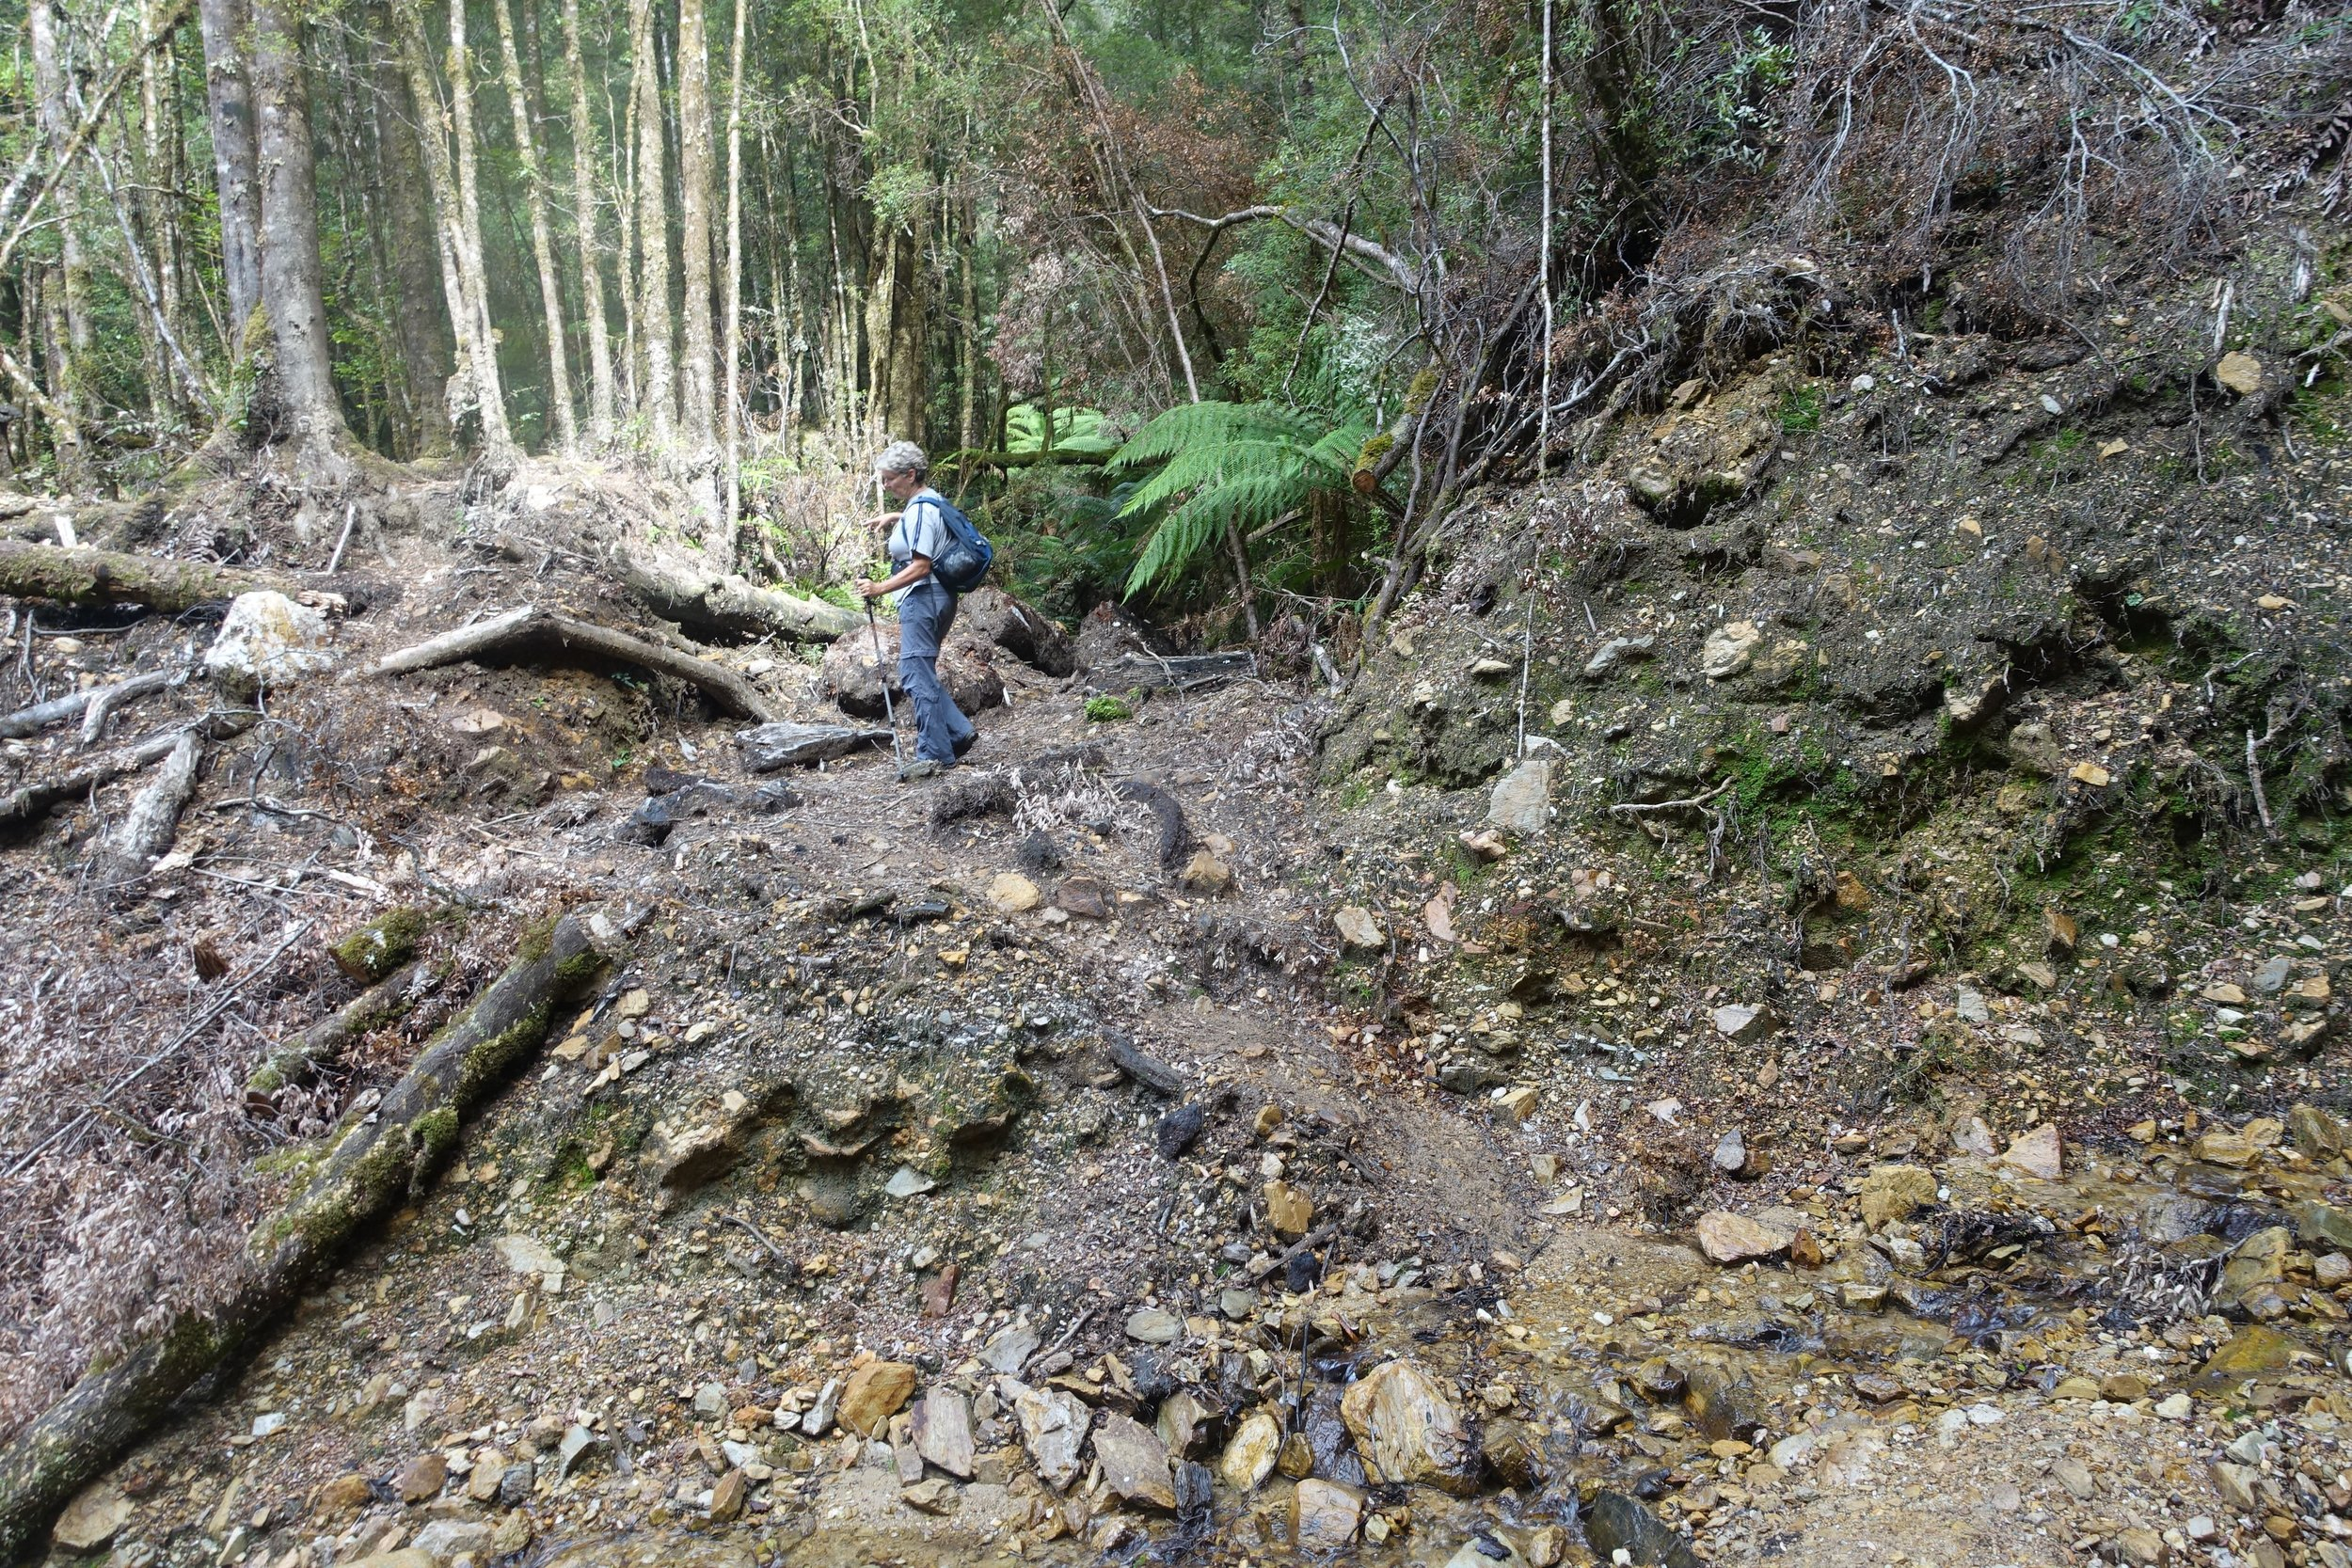 crossing the remains of a landslide